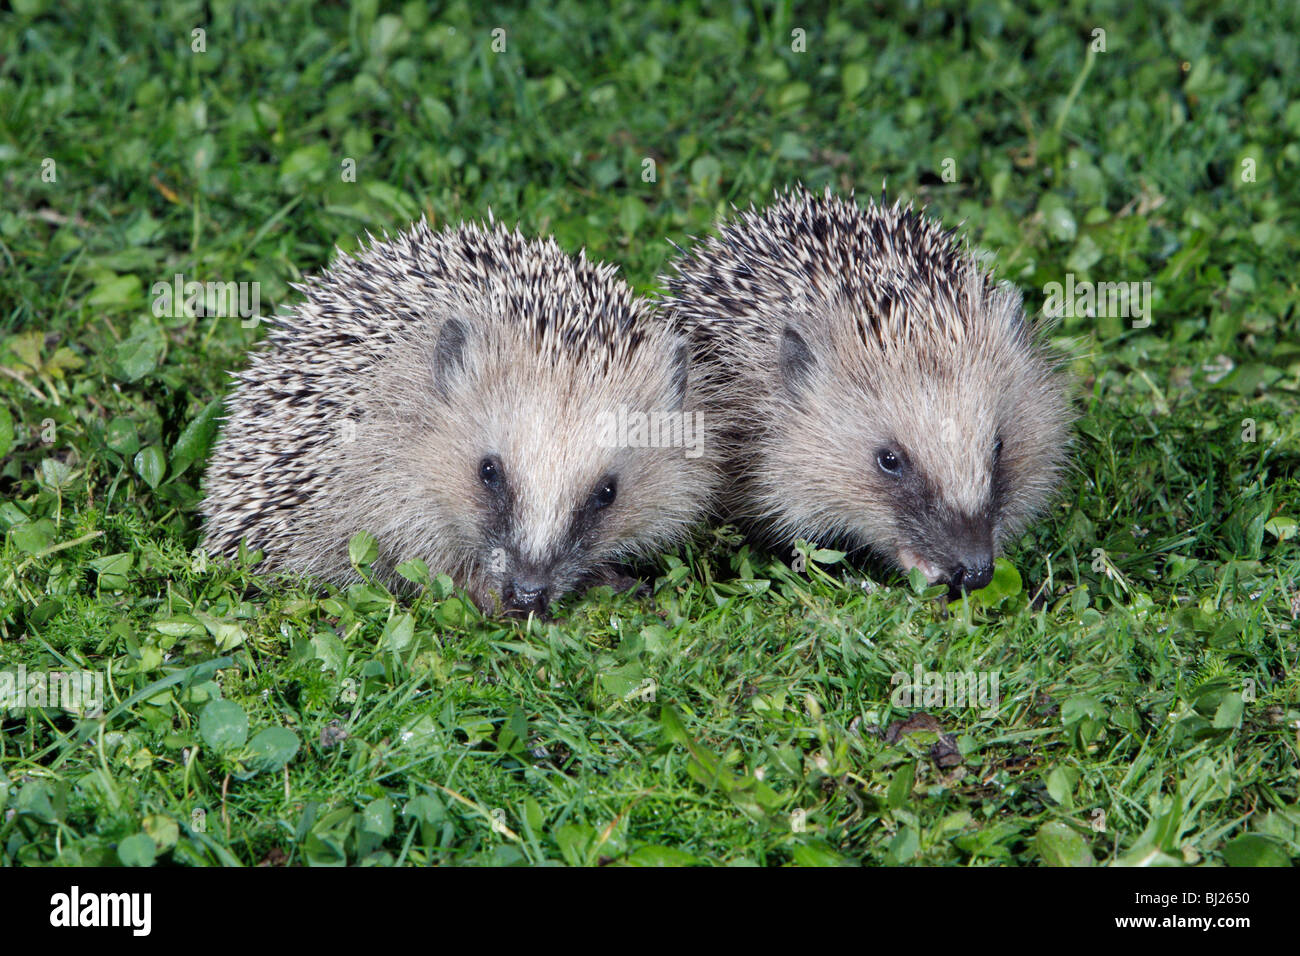 European Hedgehog (Erinaceus europaeus) 2 young animals in garden feeding - Stock Image